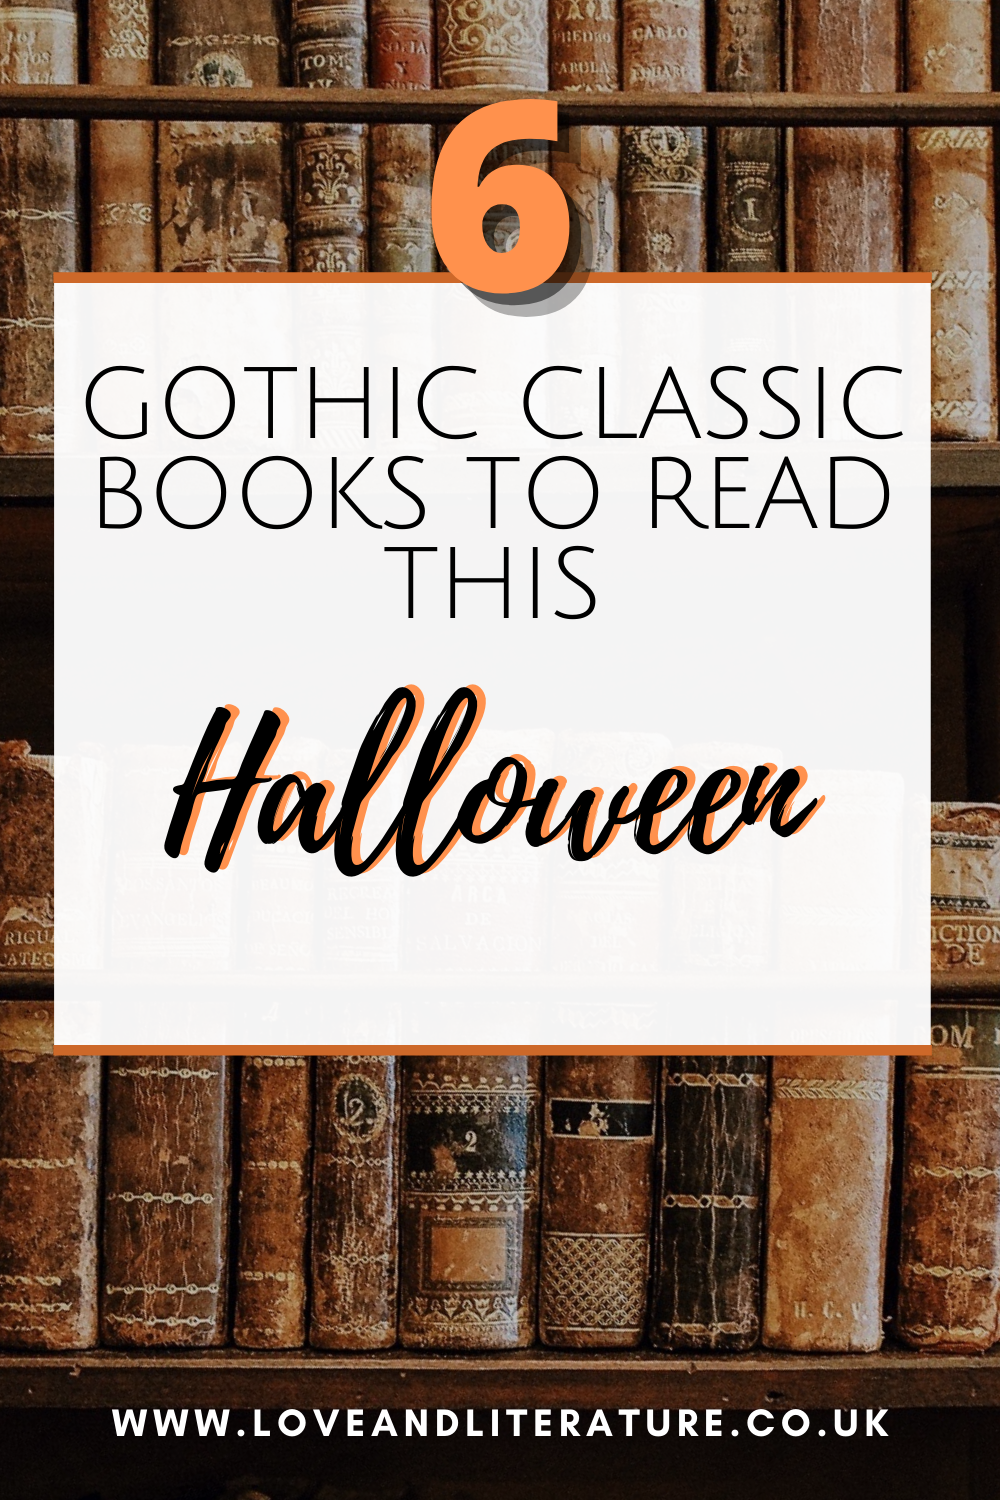 Gothic Classics To Read This Halloween Pin, Vintage Books Background, Orange Text